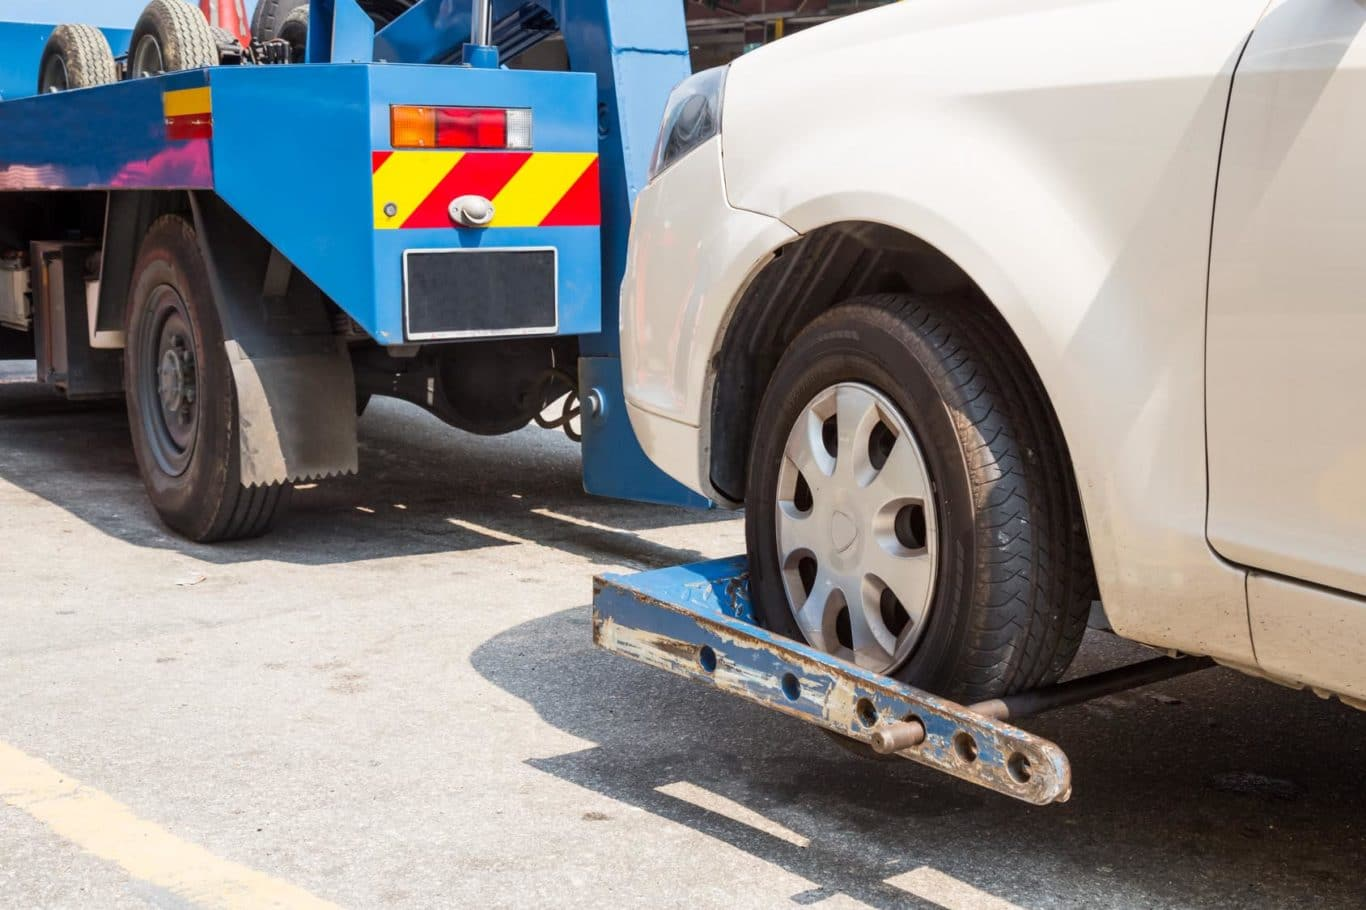 Newcastle expert Car Recovery services